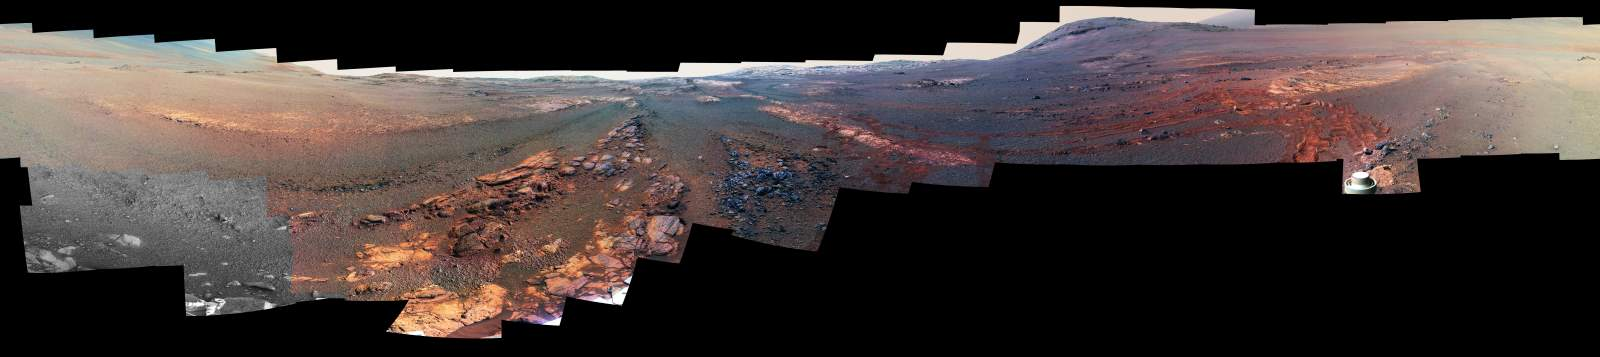 Opportunity Parting Mars Panorama